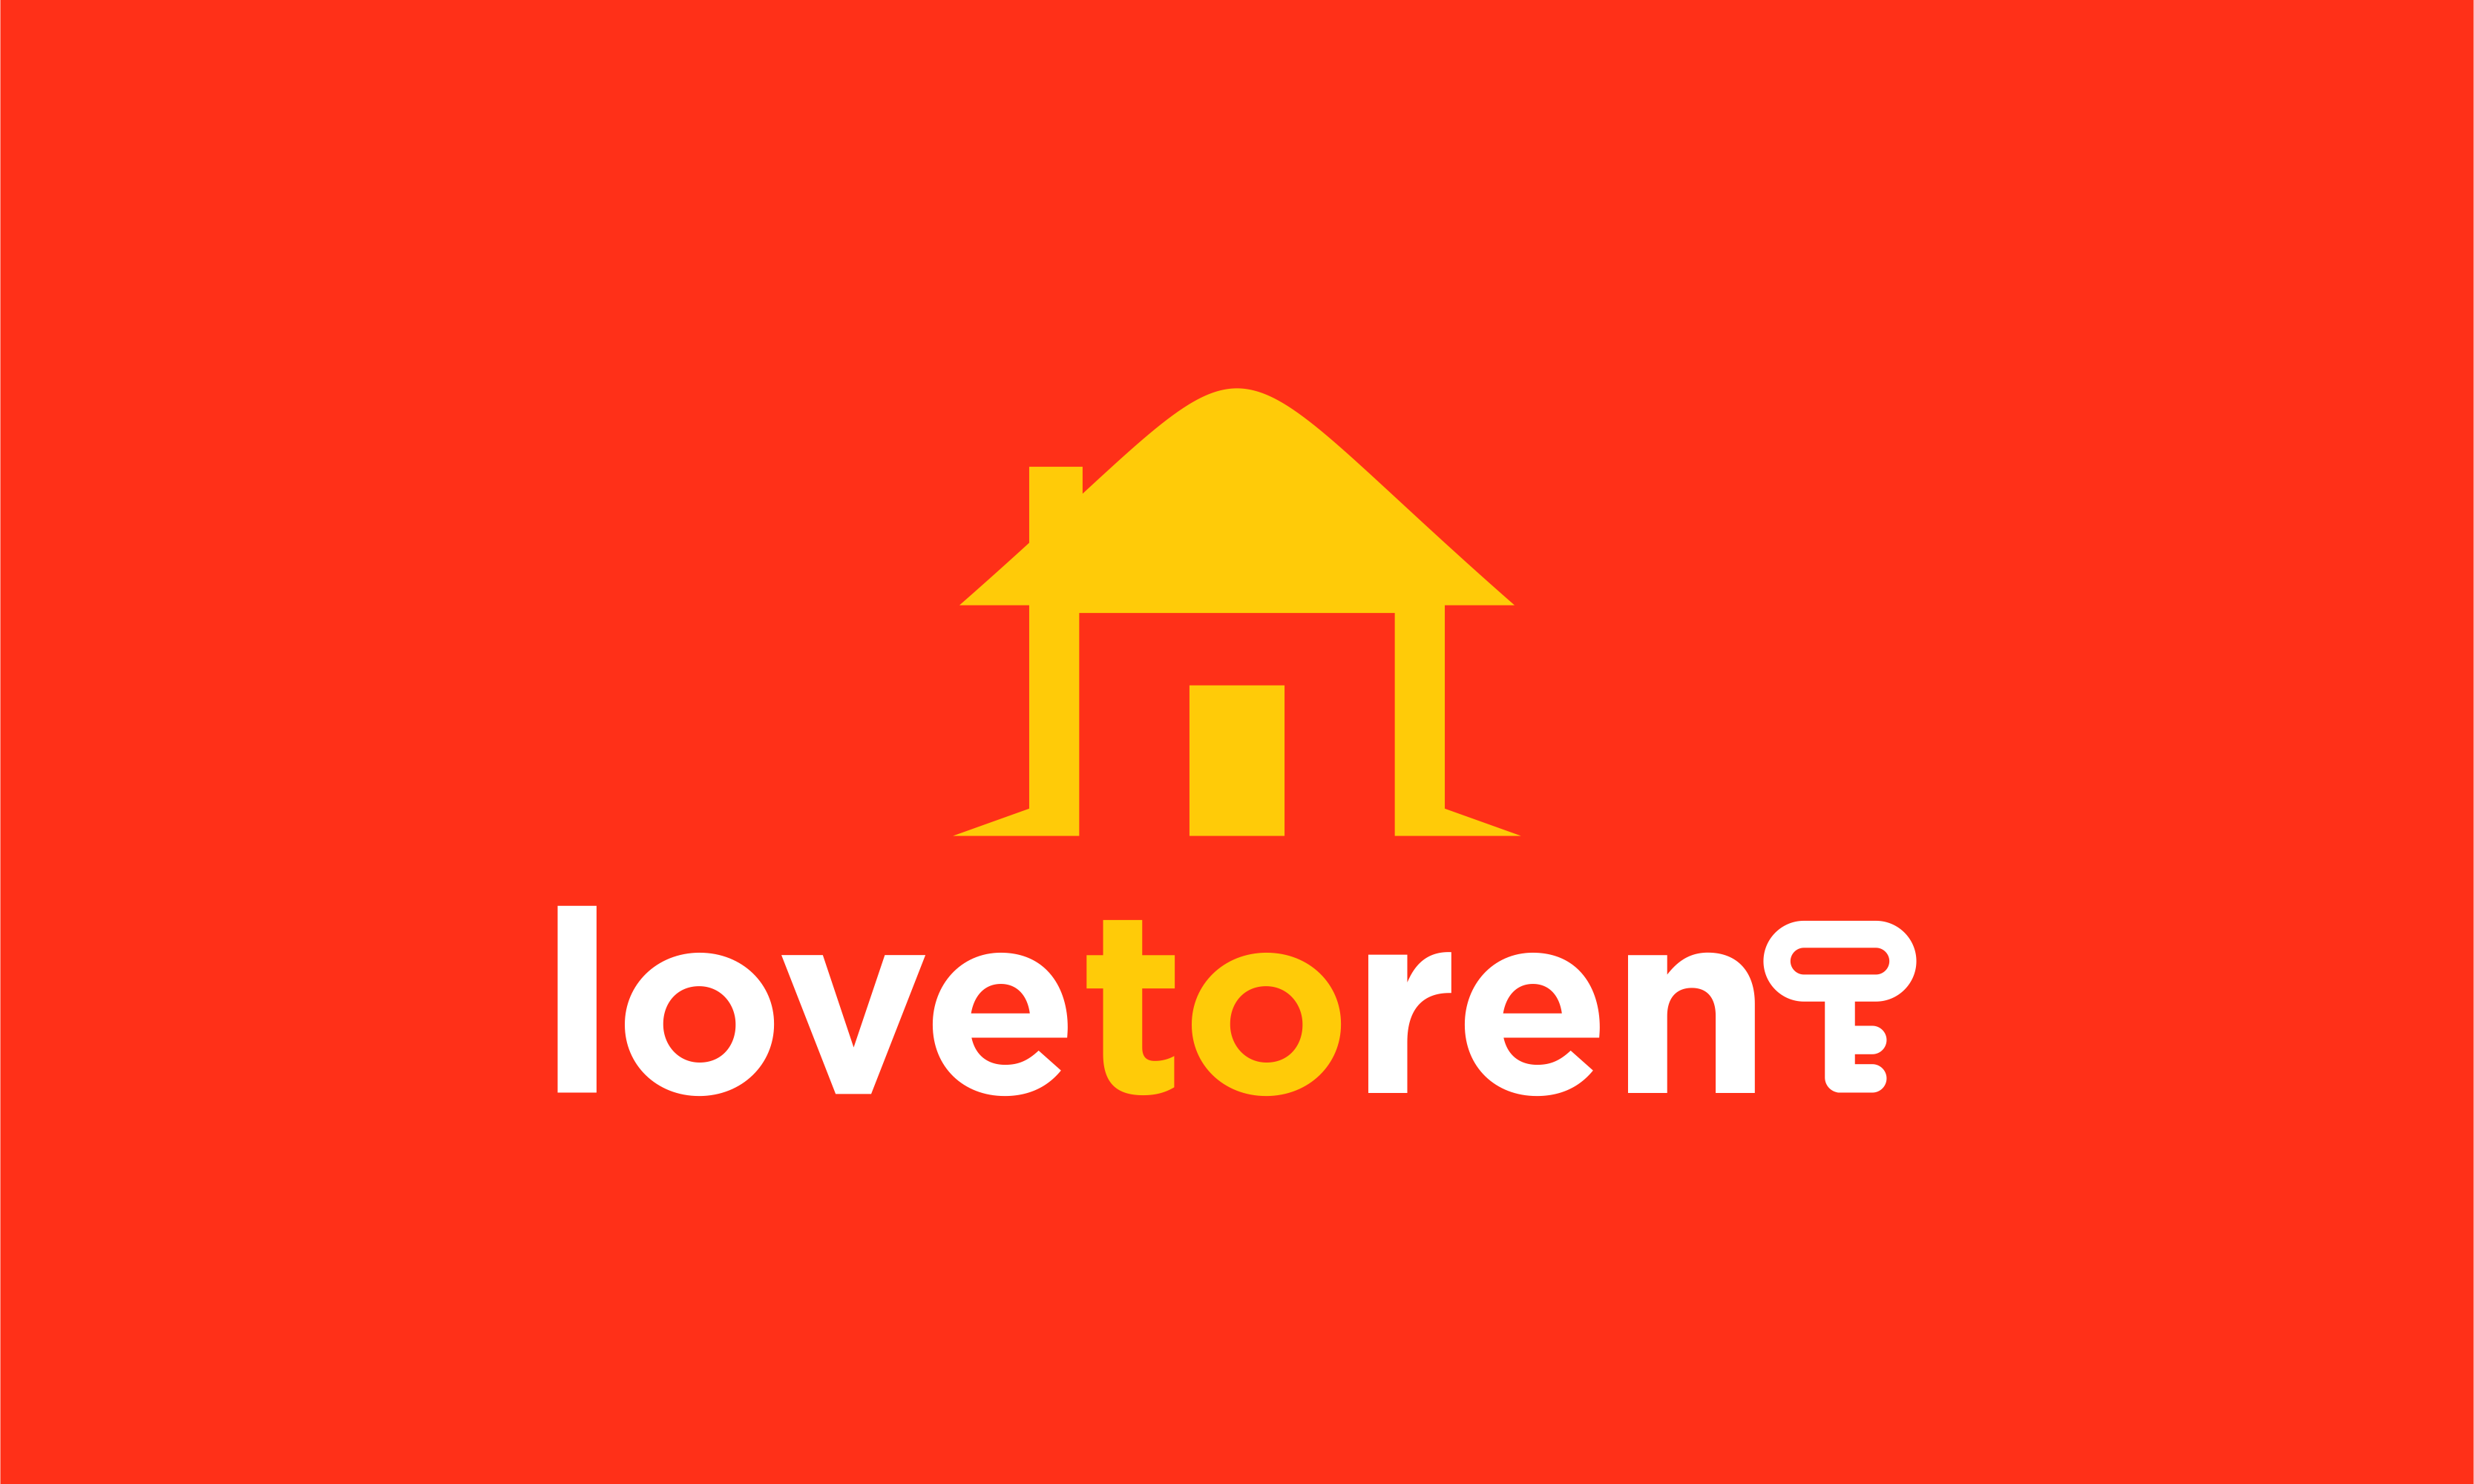 Lovetorent